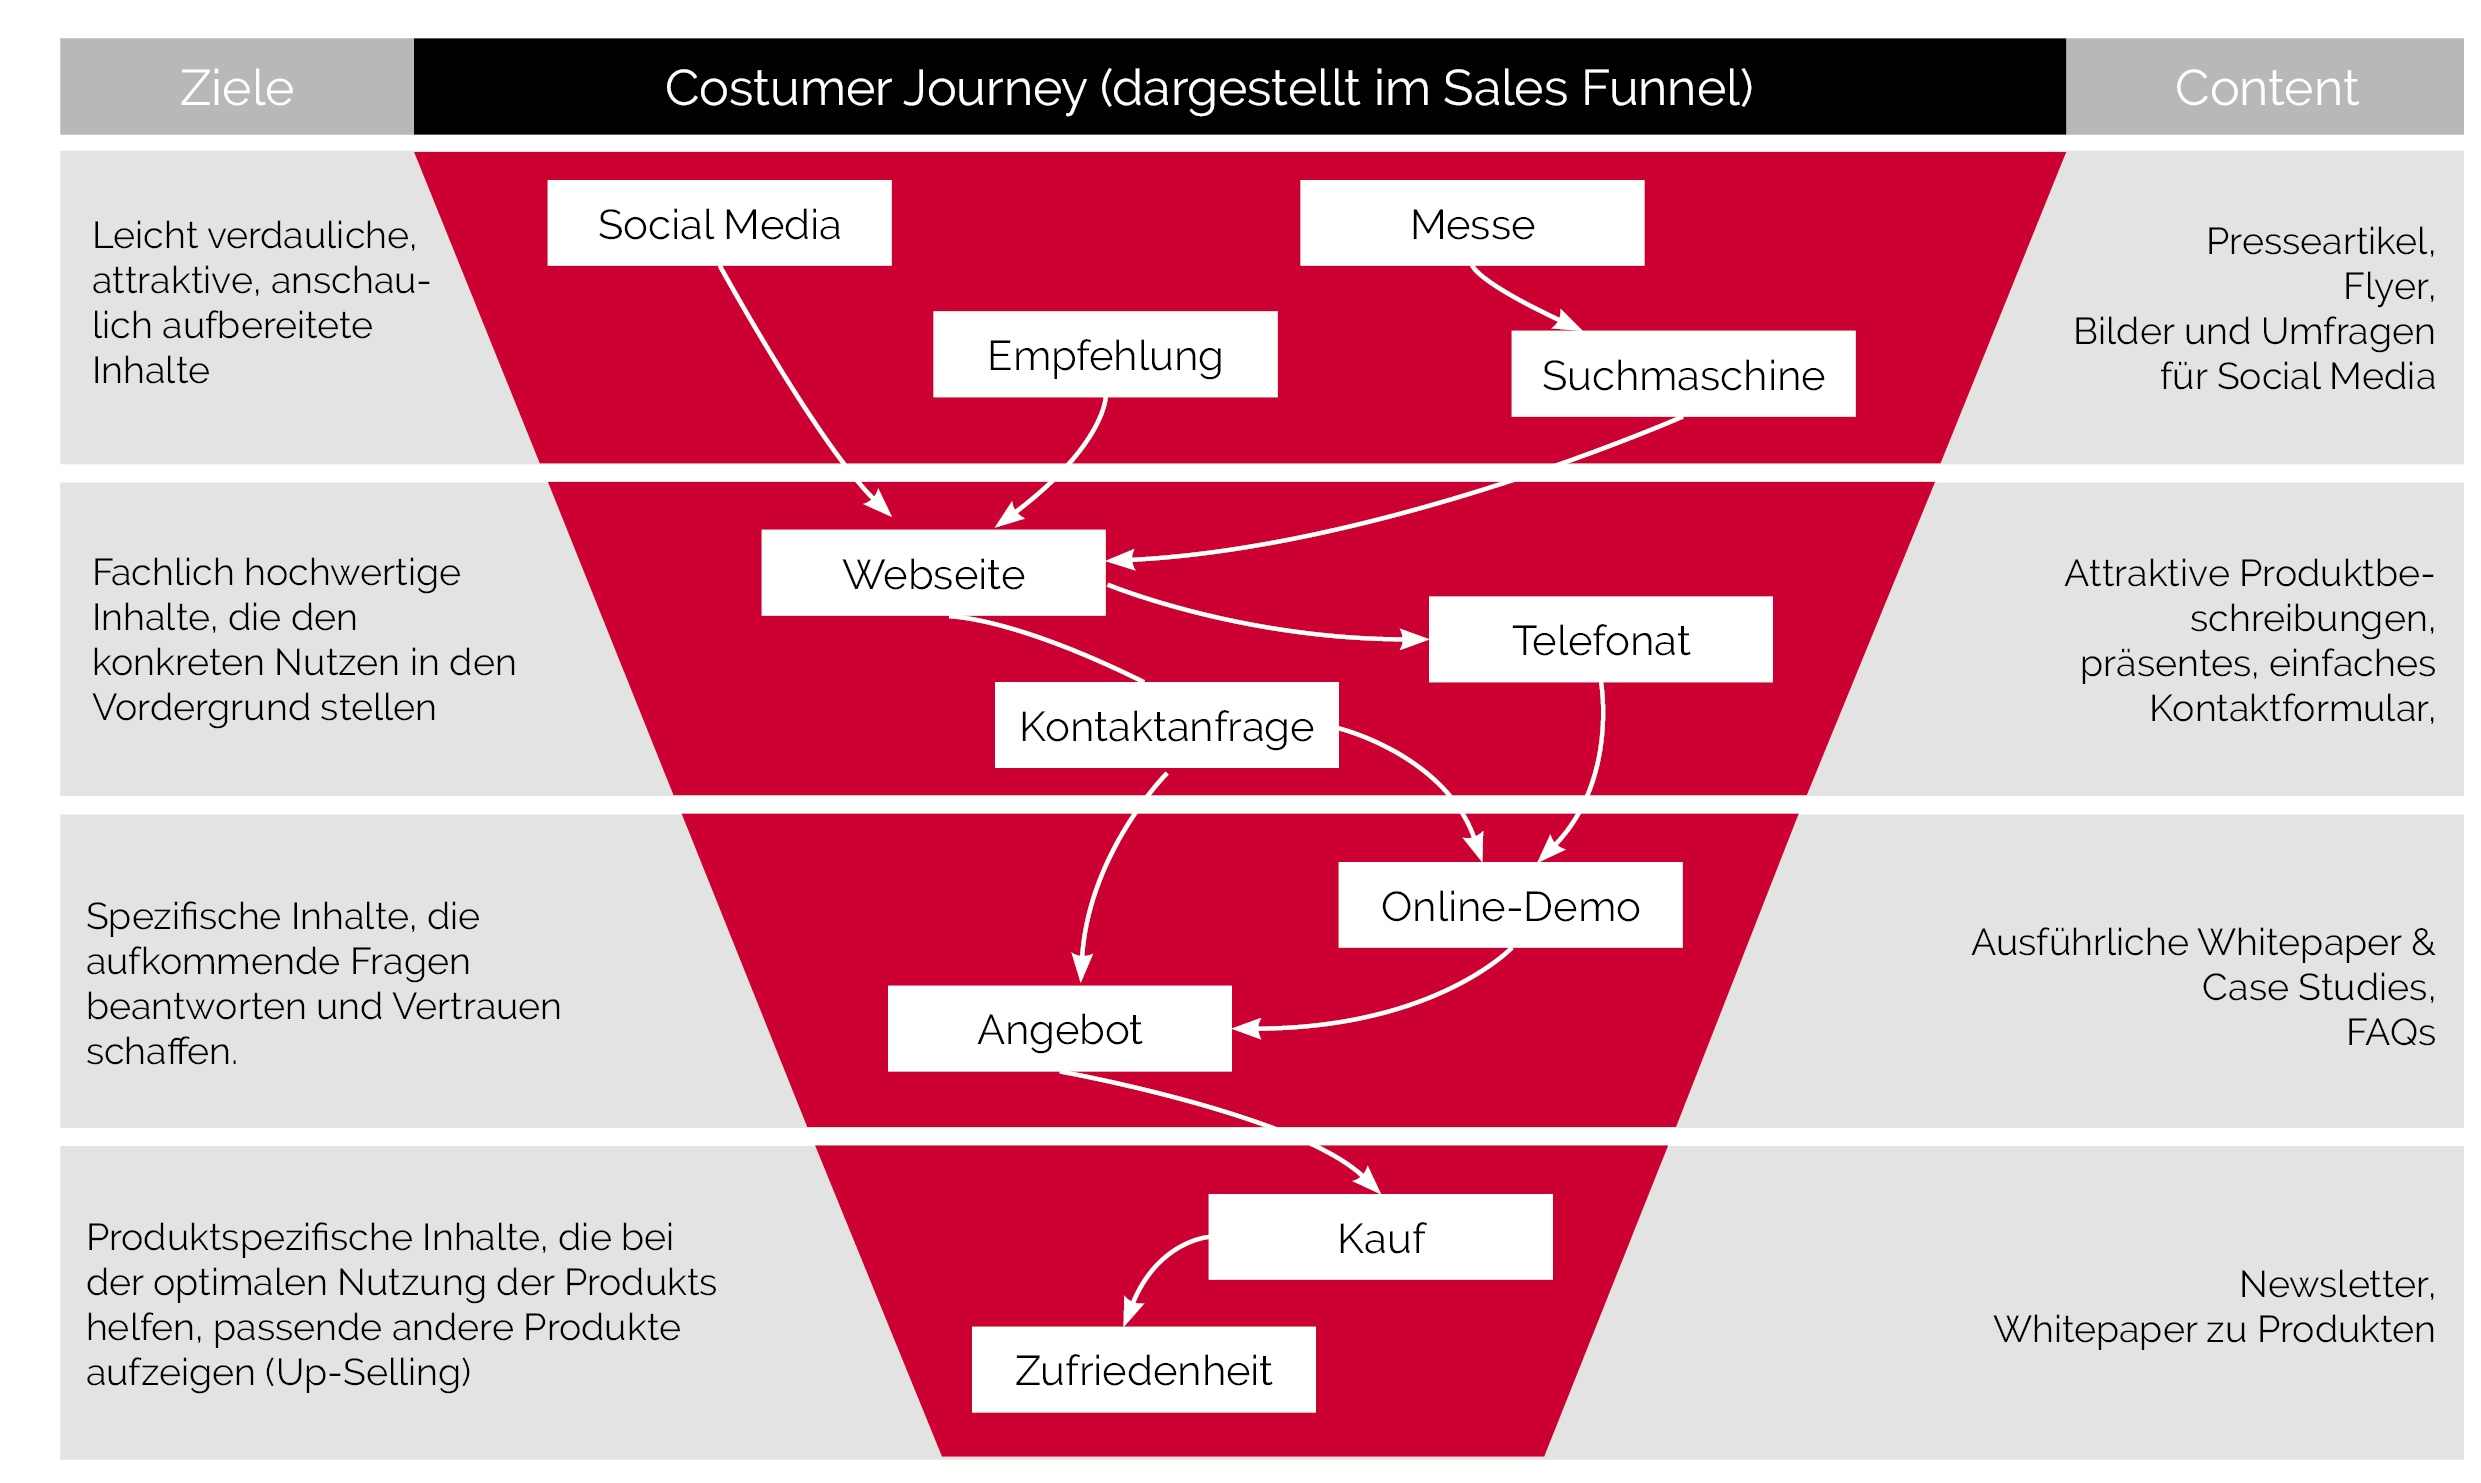 Sales Funnel Costumer Journey